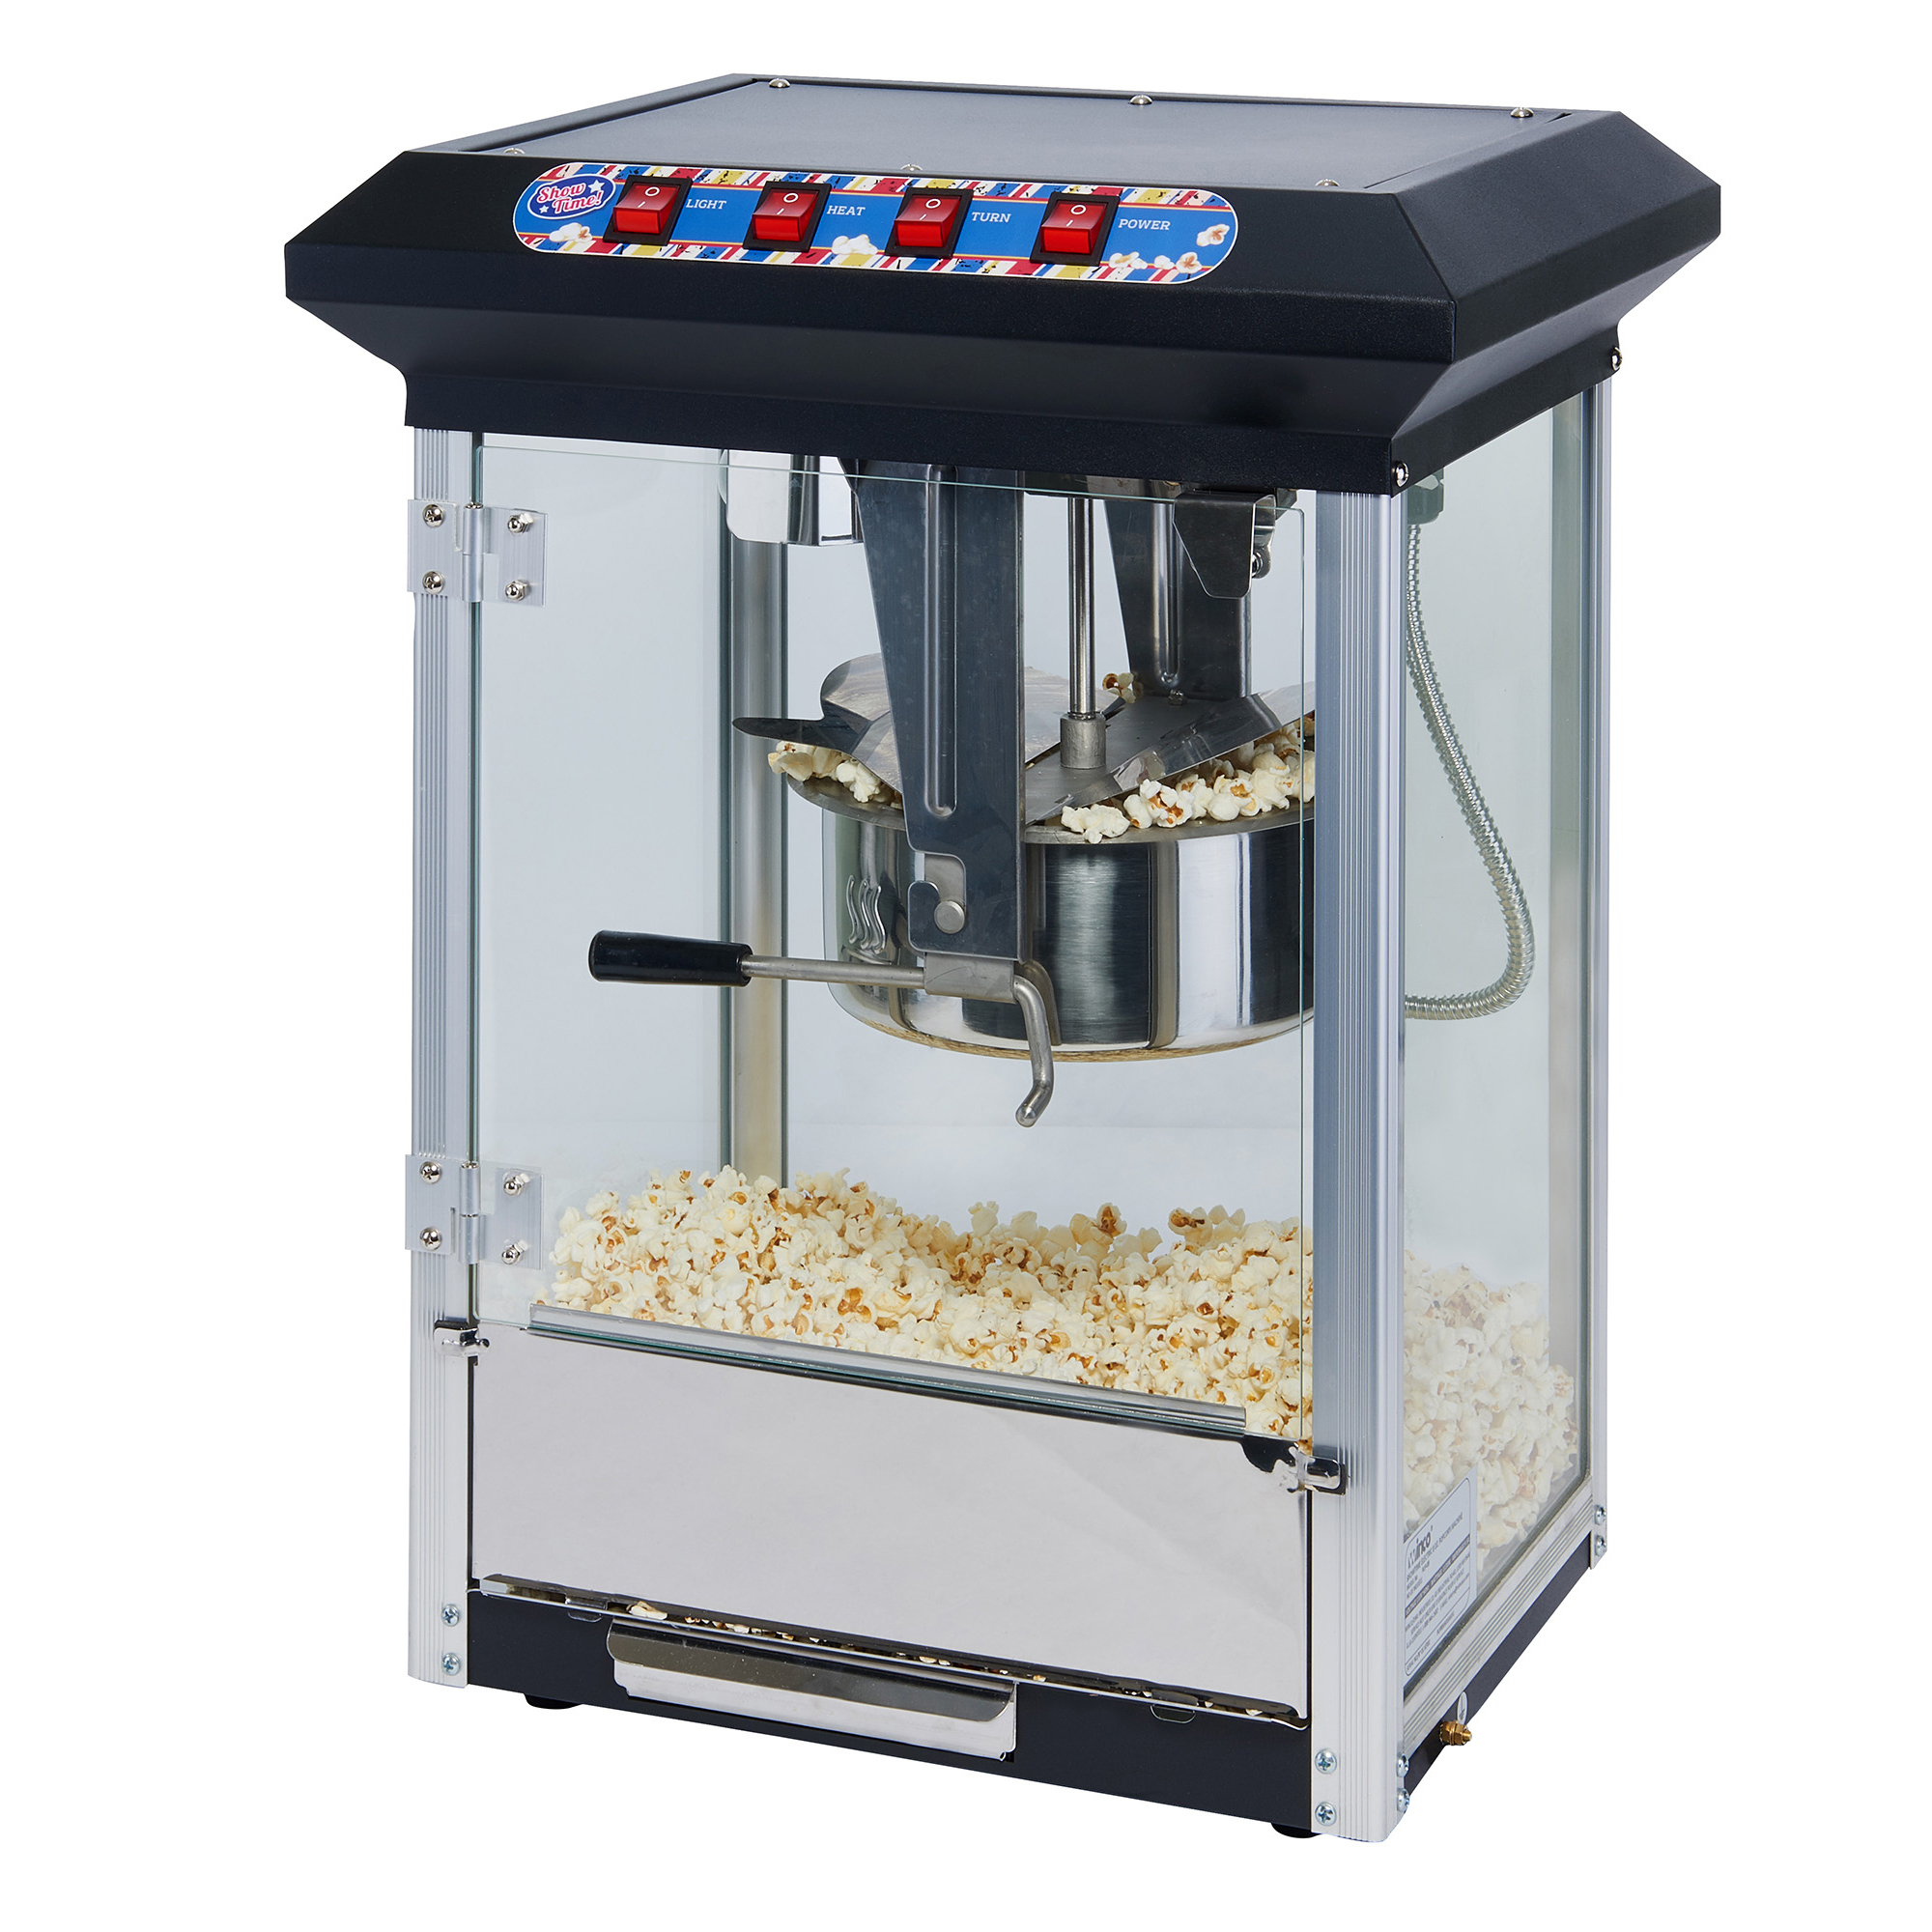 Winco POP-8B popcorn popper